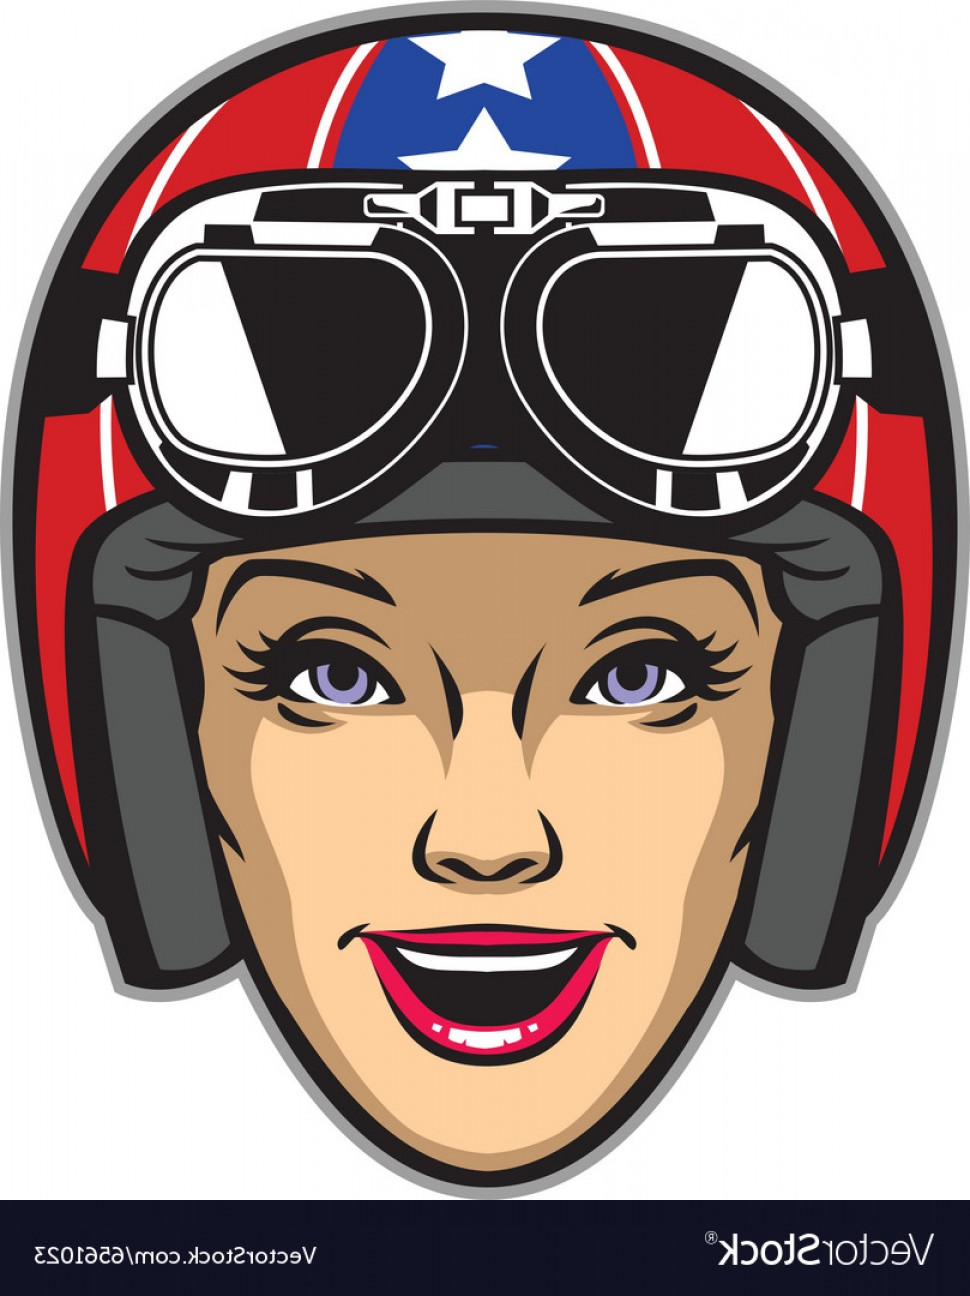 Motorcycle Helmet Vector Art: Women Rider Wearing Motorcycle Helmet Vector